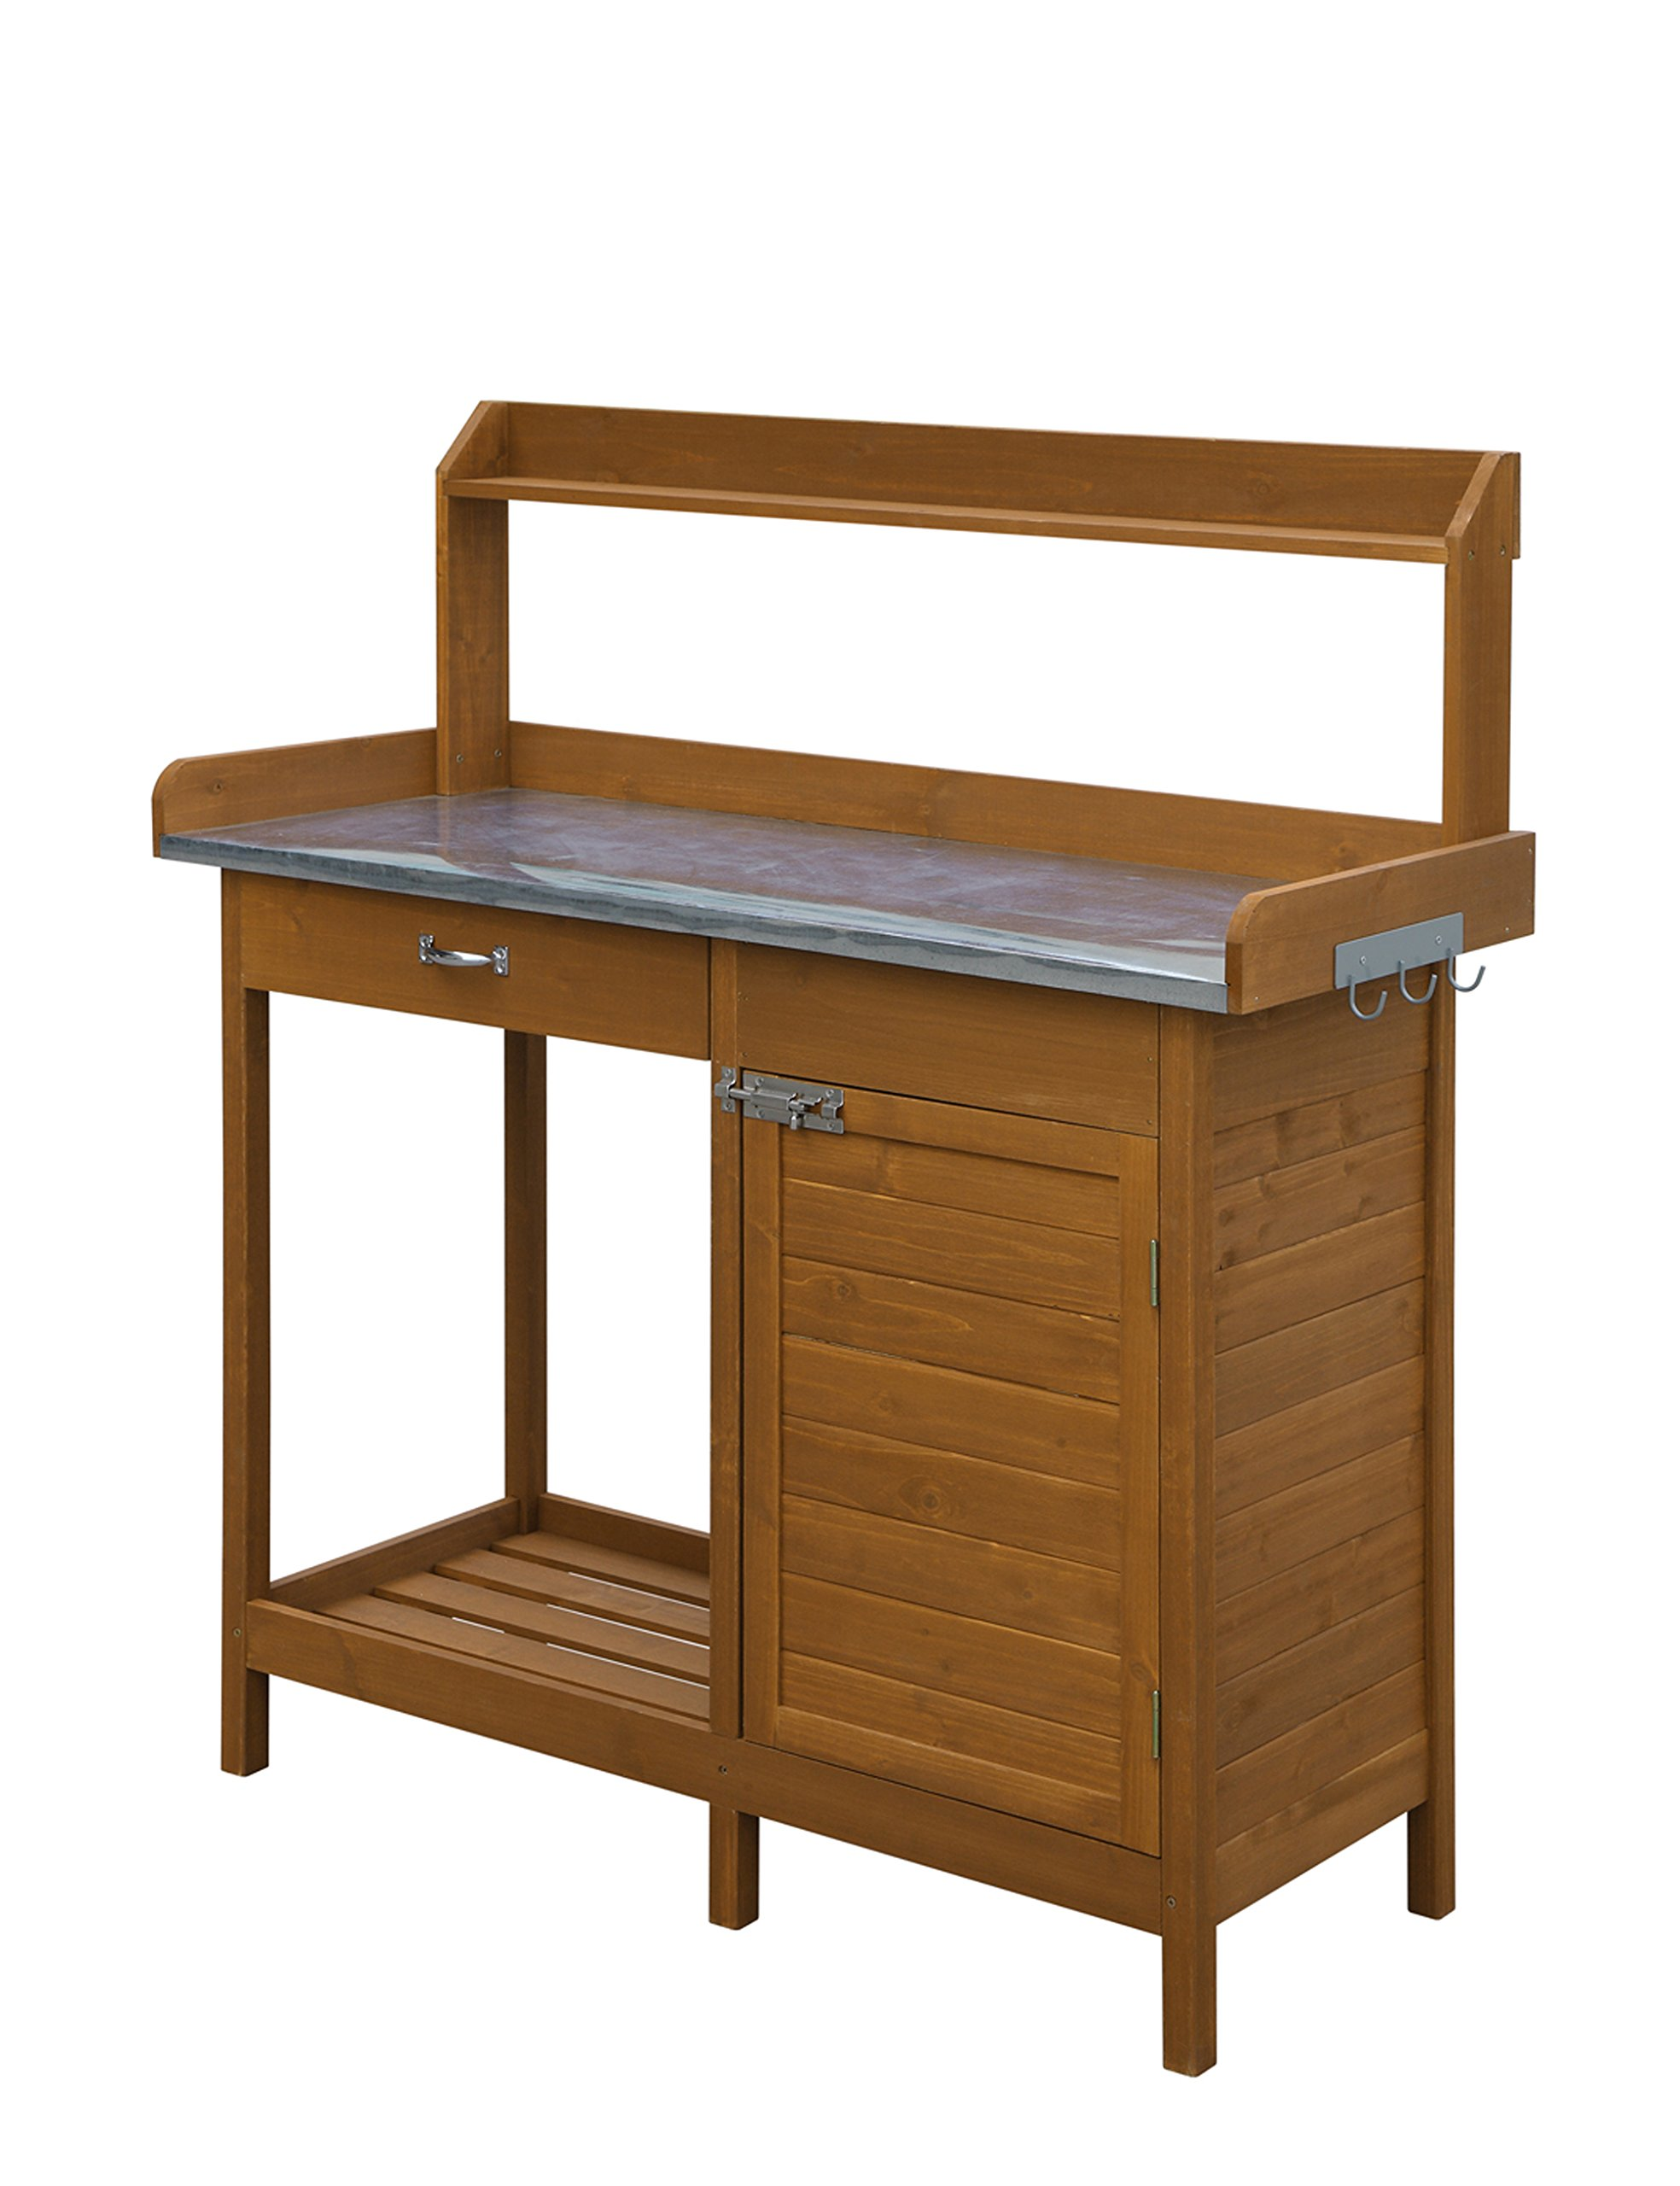 Convenience Concepts Deluxe Potting Bench With Cabinet by Convenience Concepts